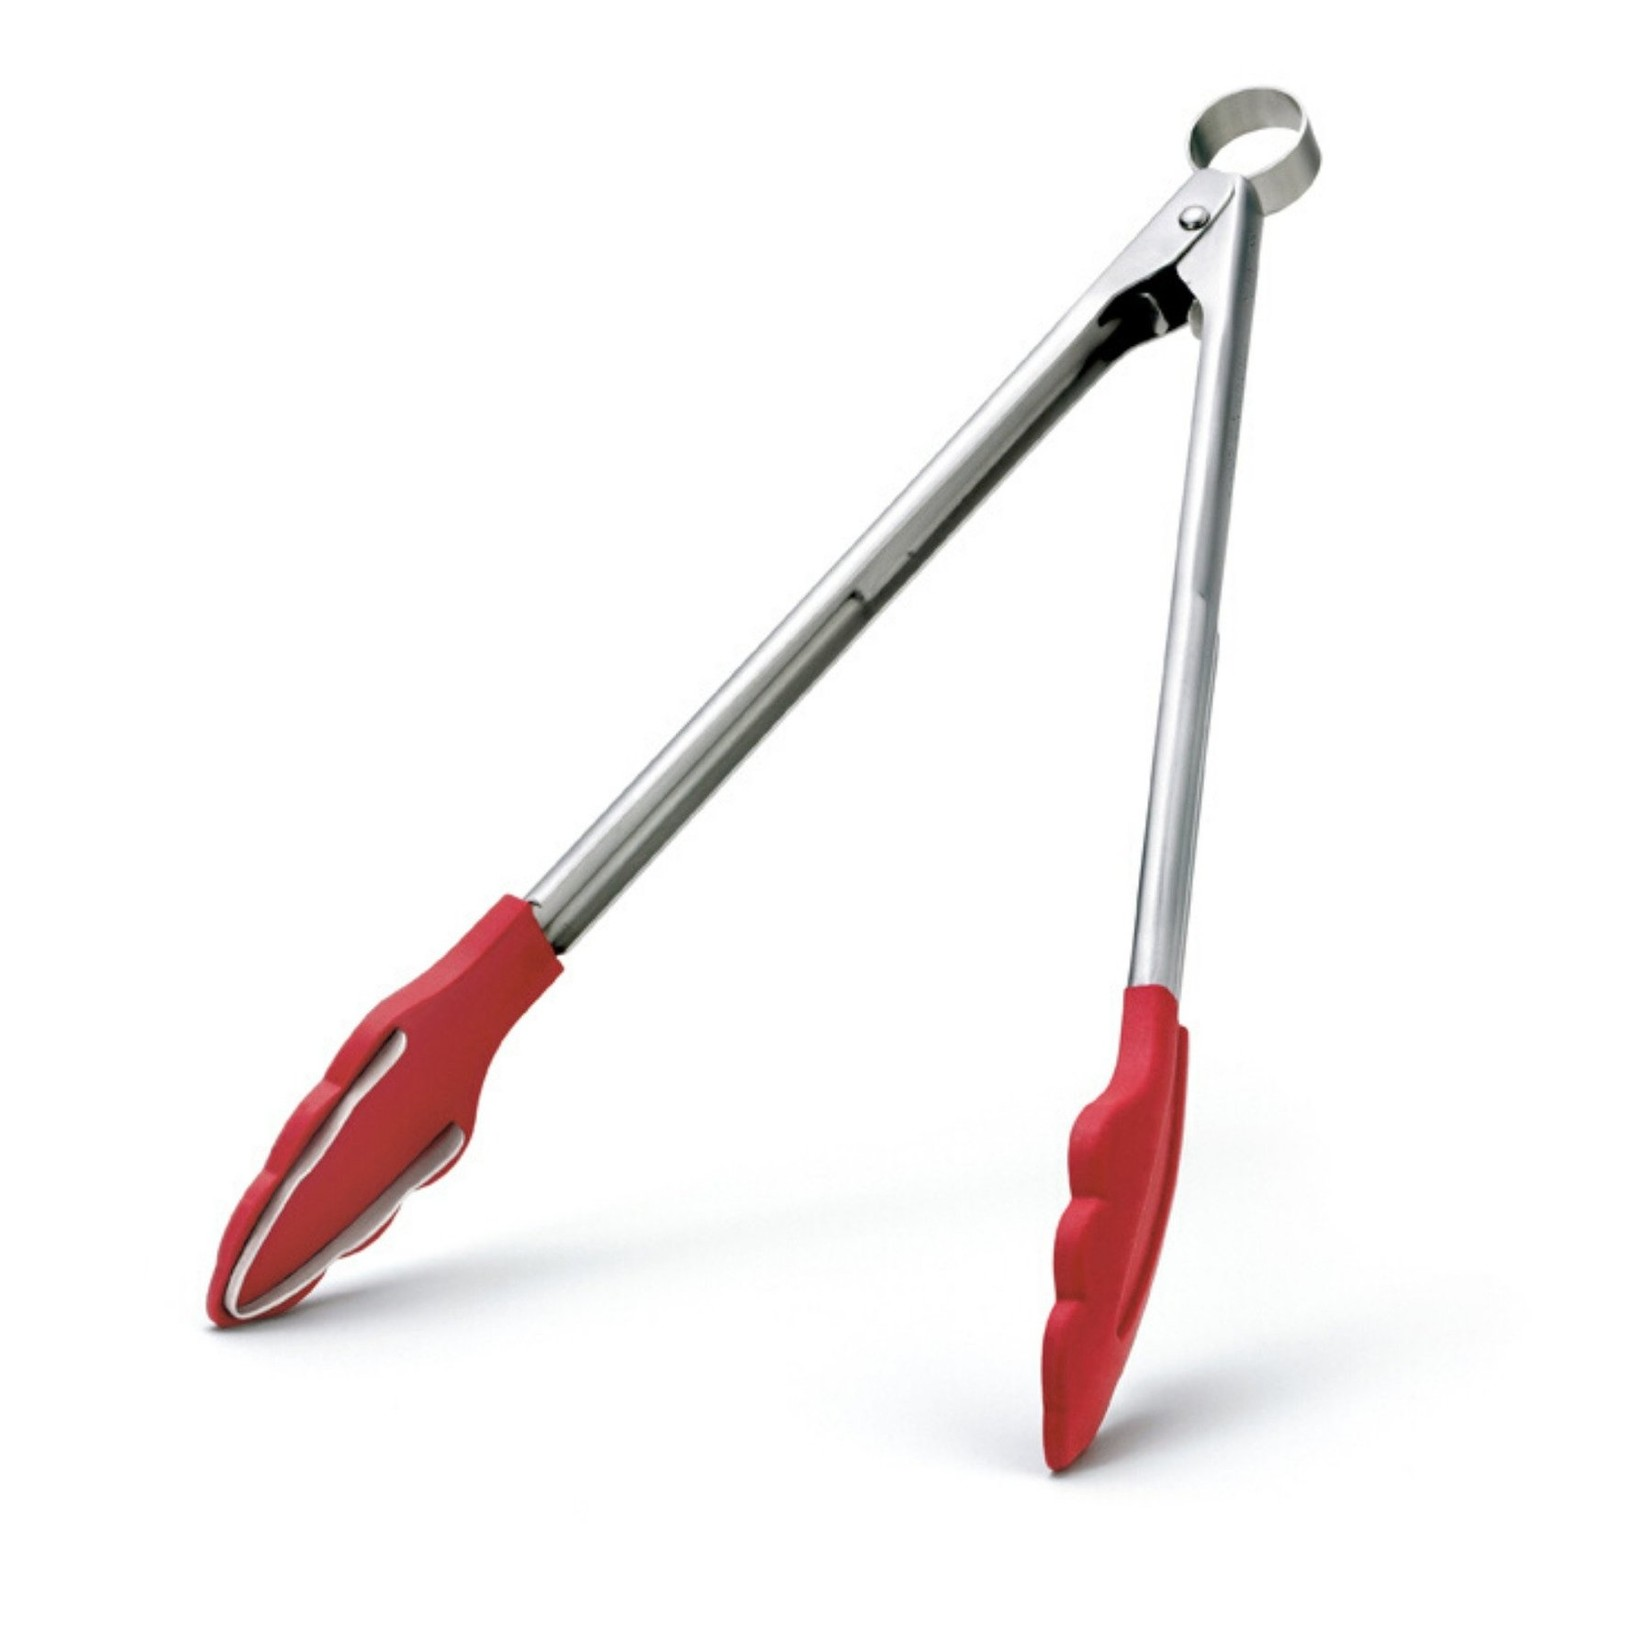 Cuisipro Silicone Tongs with Teeth